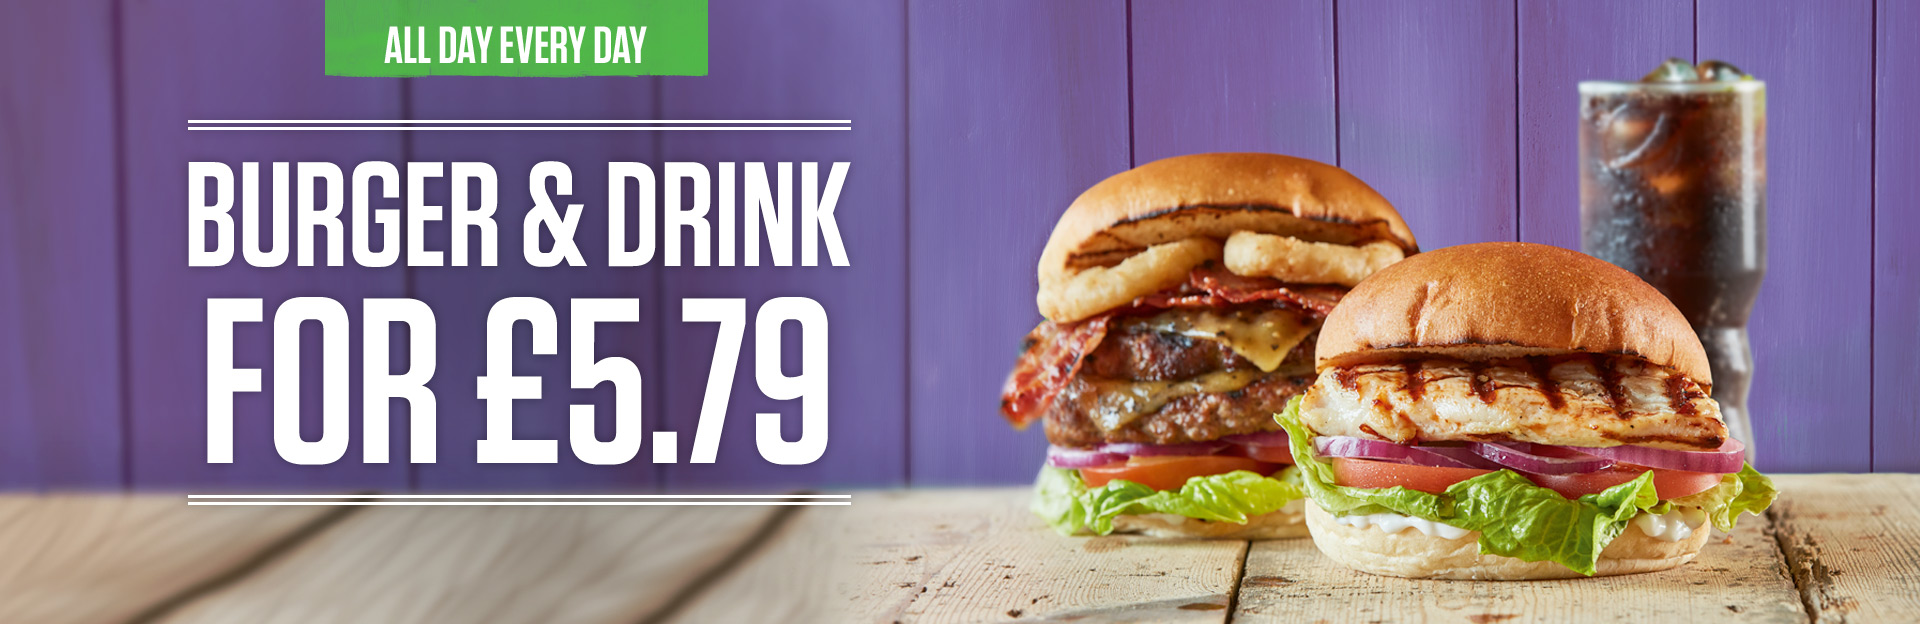 Burger and Drink Deal at THE BRUCE